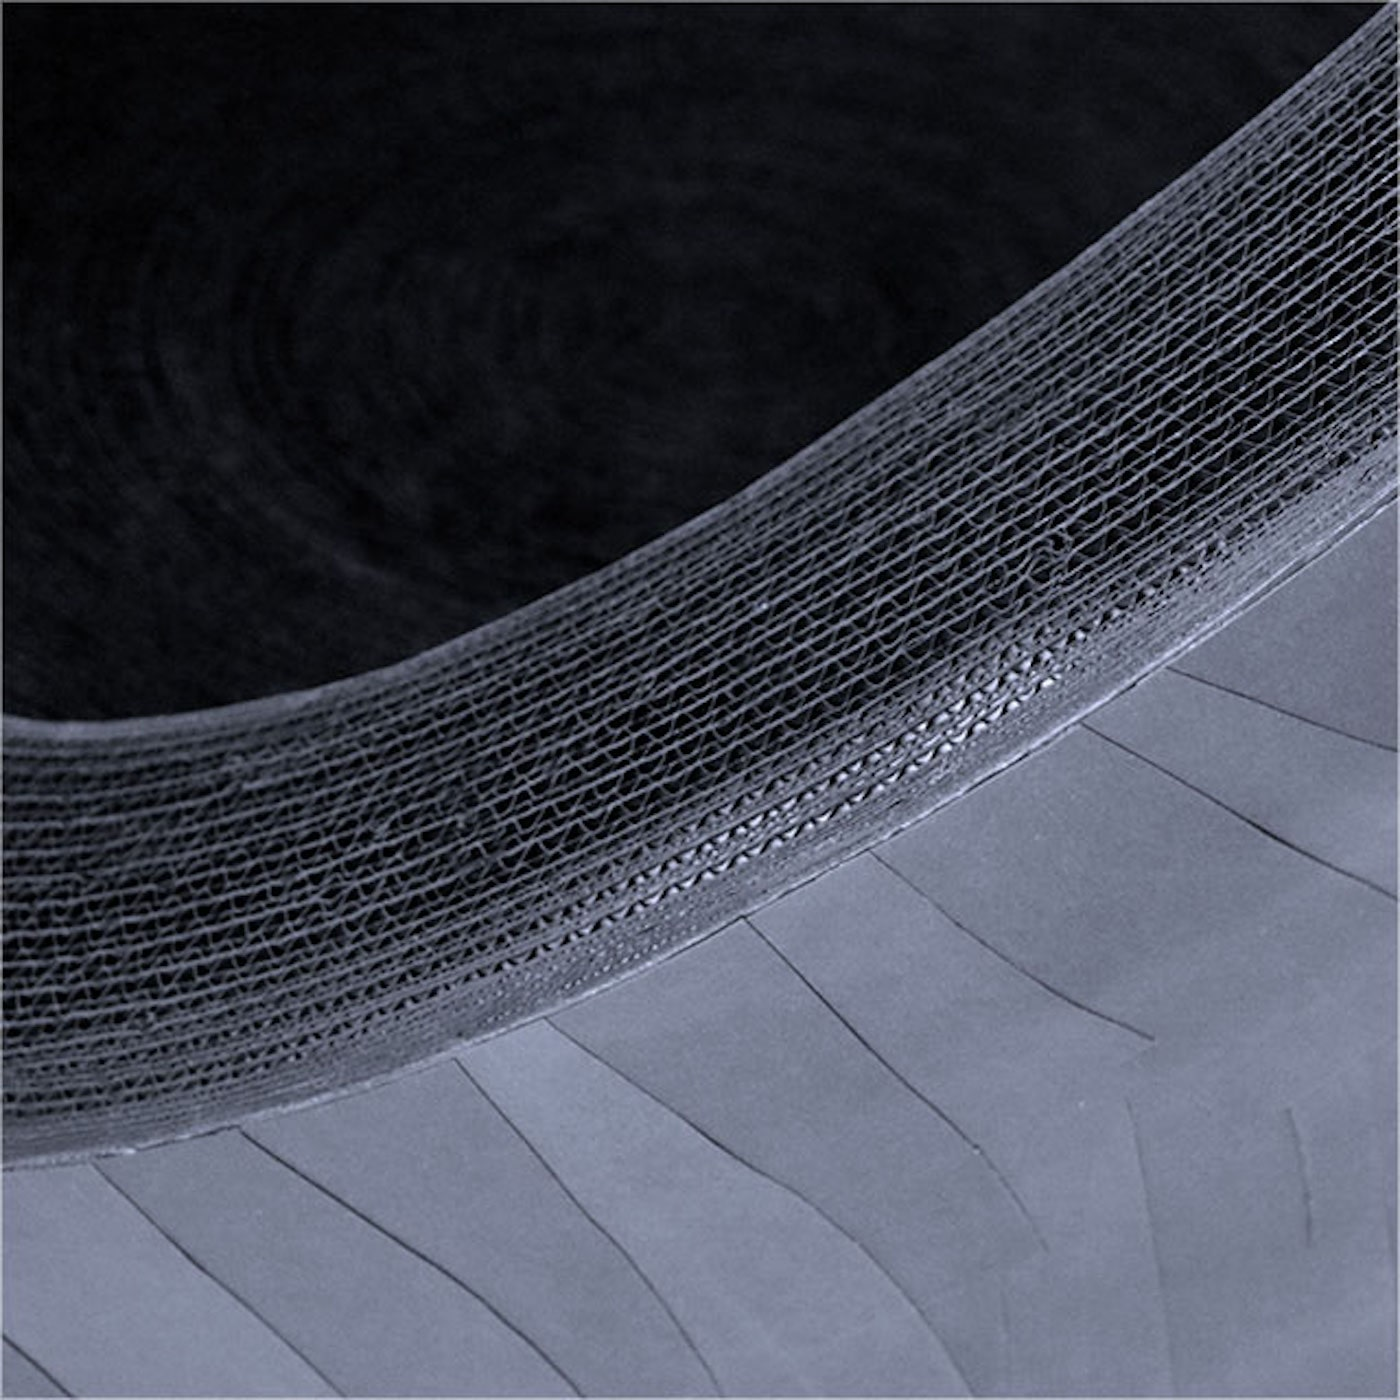 Detail view of curved black cardboard chair